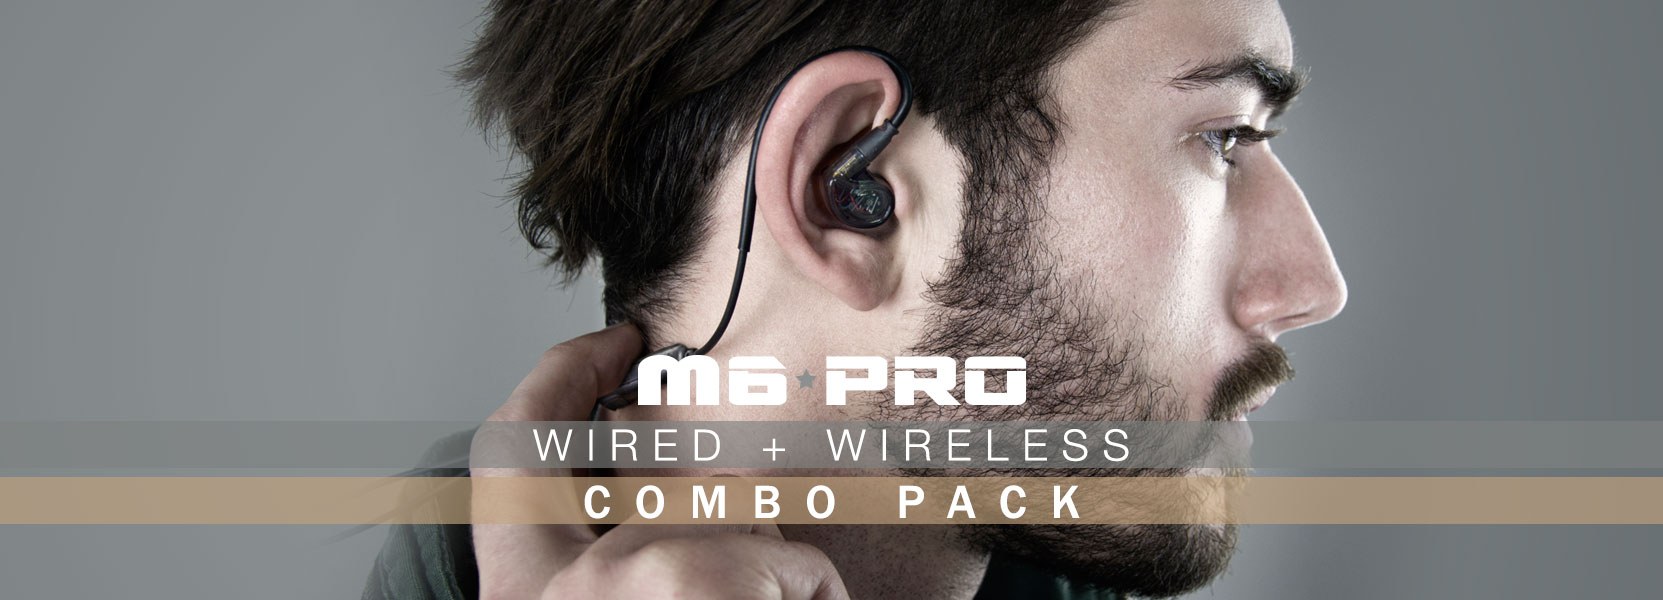 Built-in microphone and remote of the M6 PRO wired + wireless in ear monitors combo pack's Bluetooth audio adapter